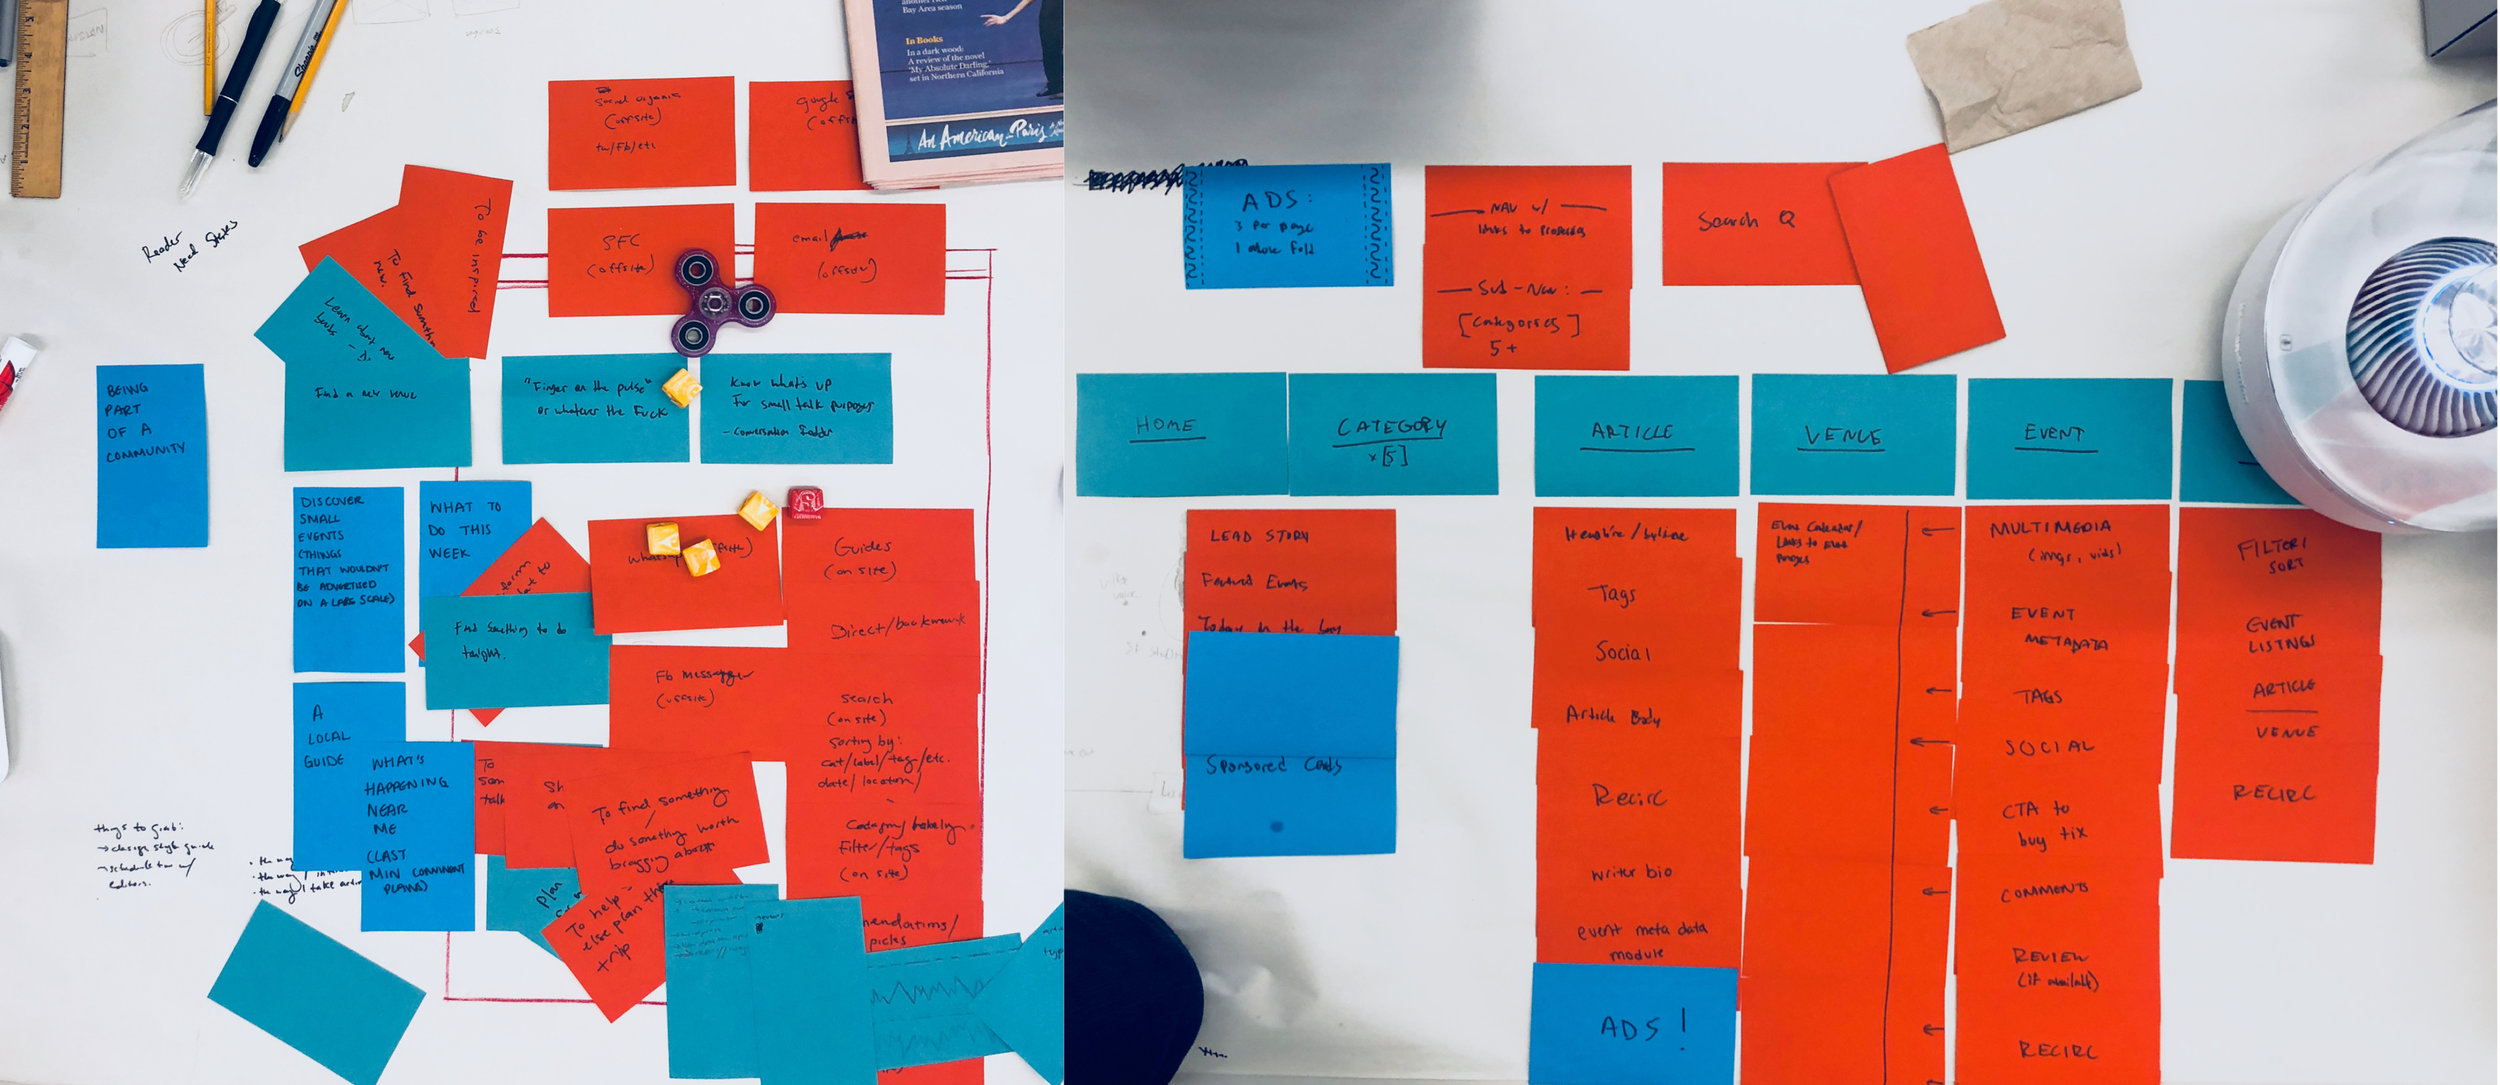 Mapping out reader needs (left) and site component mapping (right)